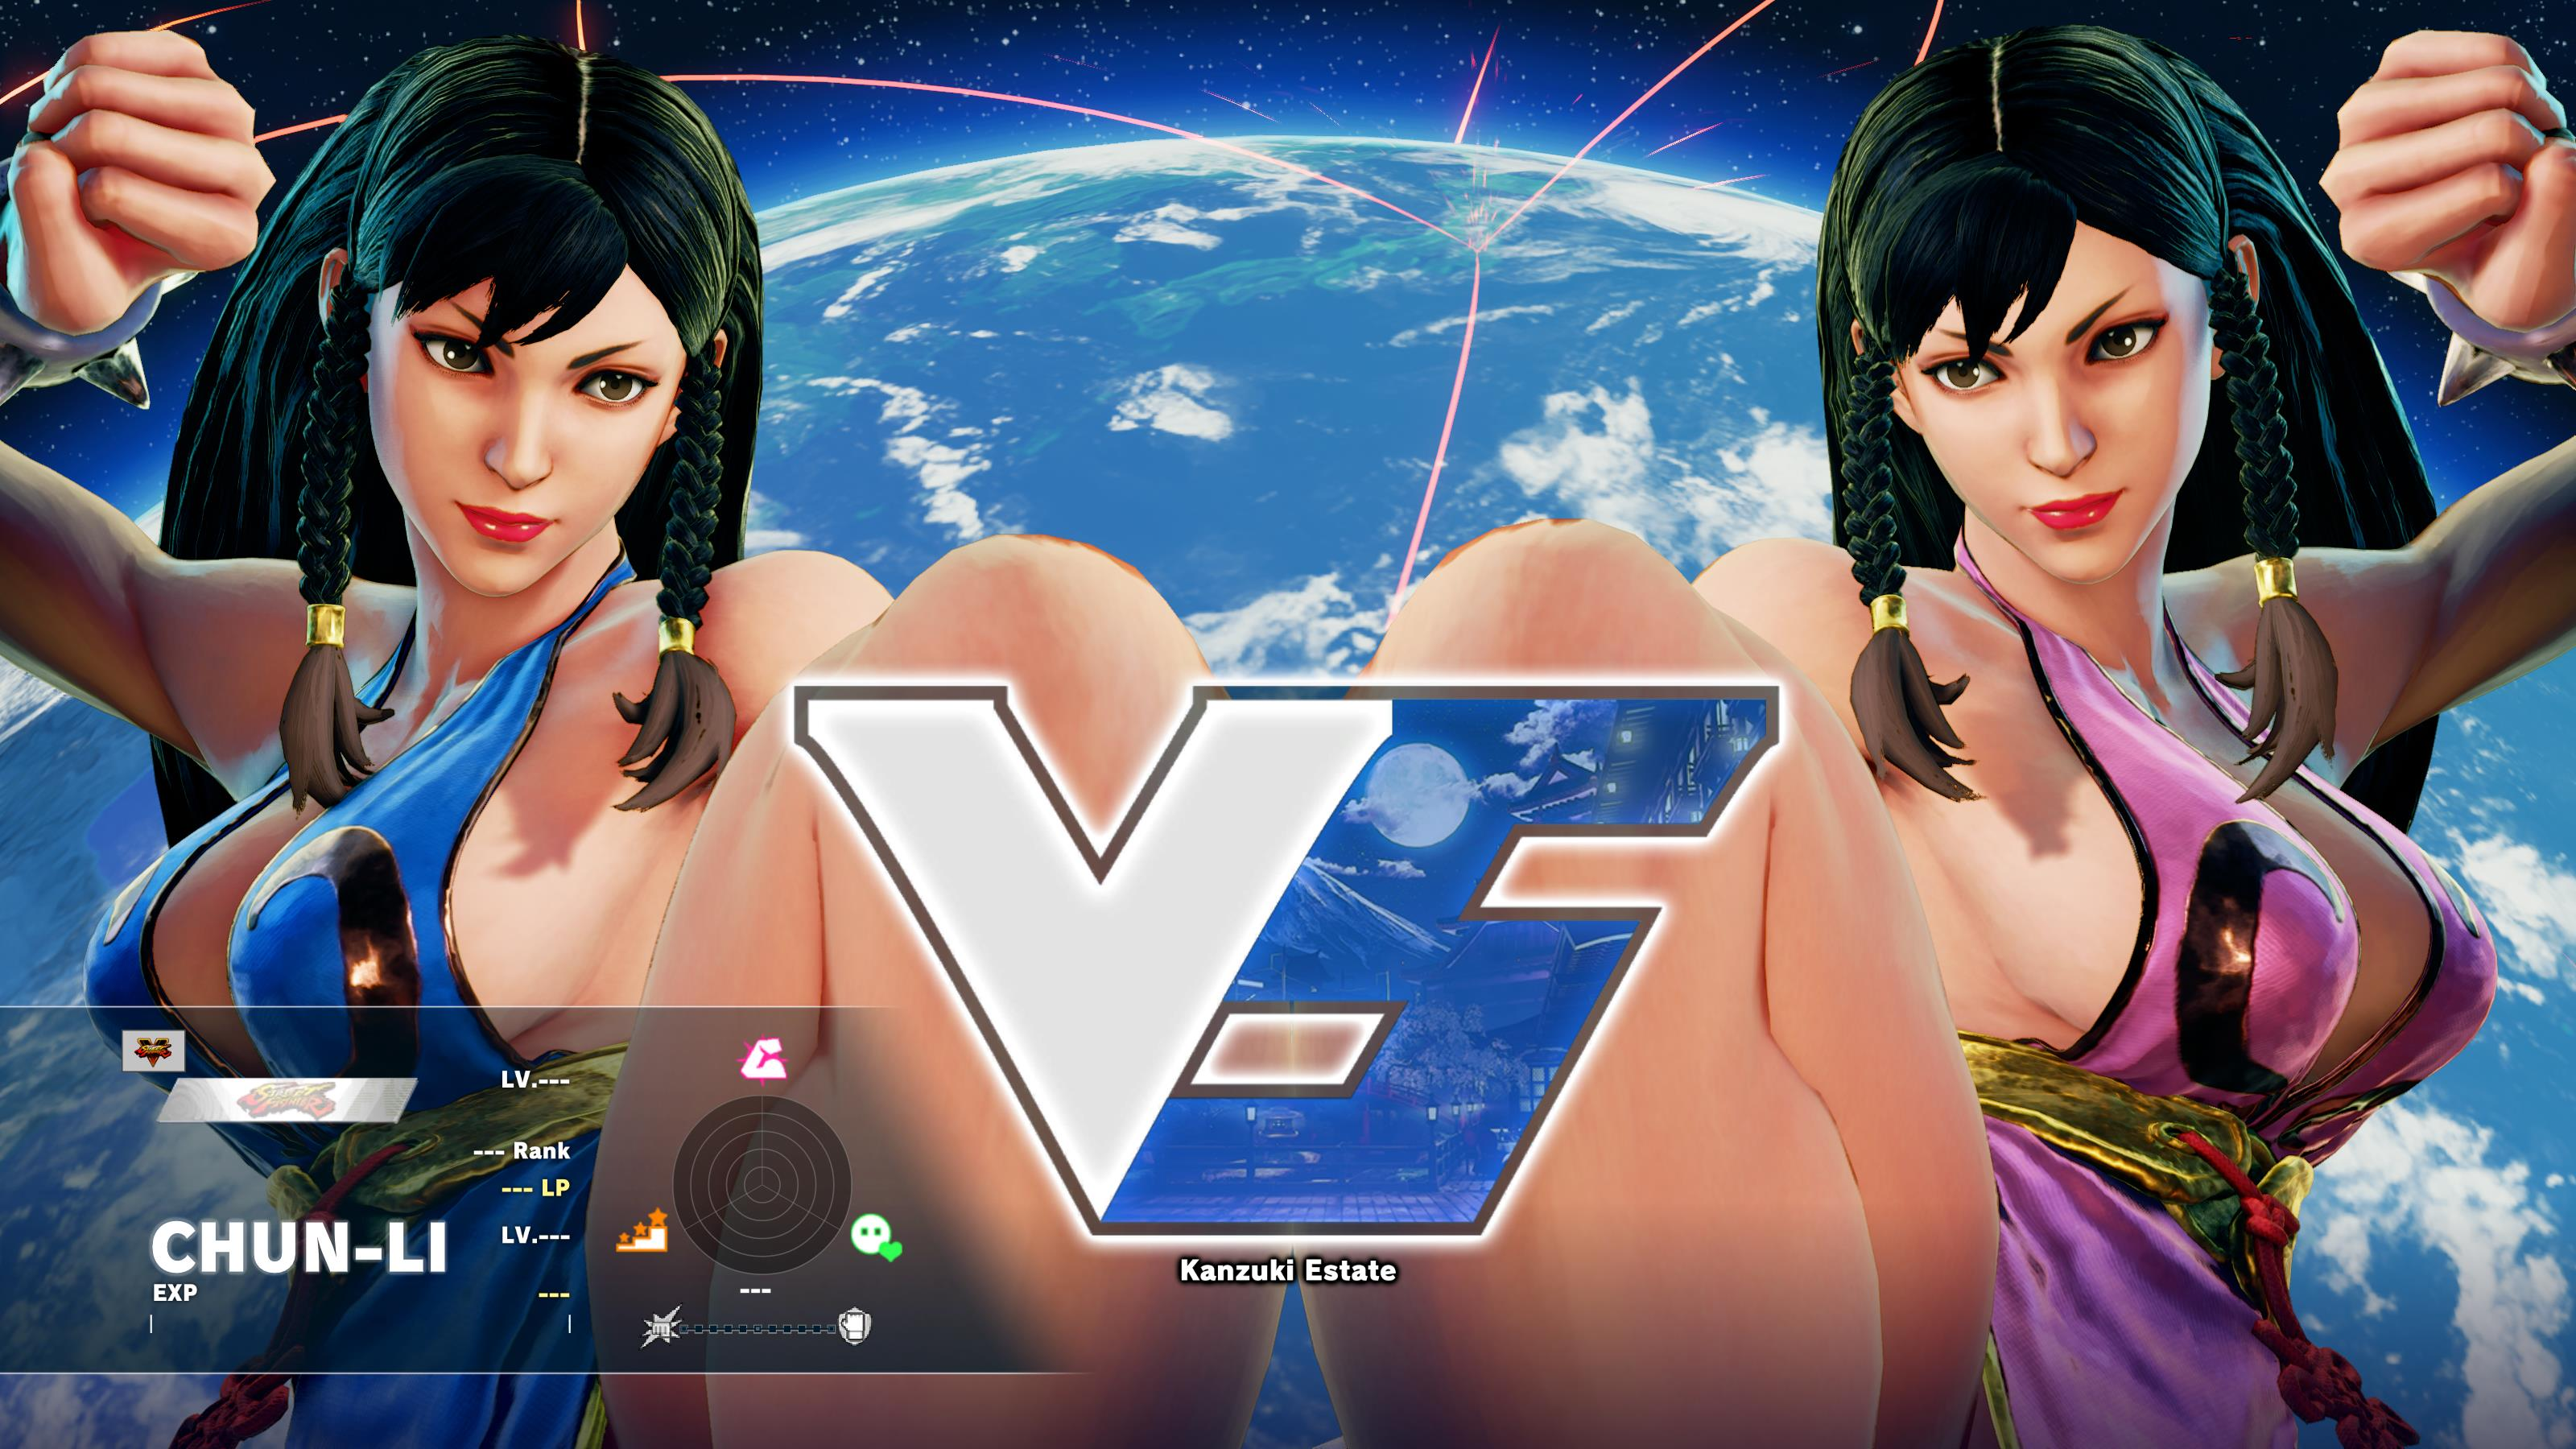 Check Out These Leaked Street Fighter V Alternate Costumes Game Key Fox Blog